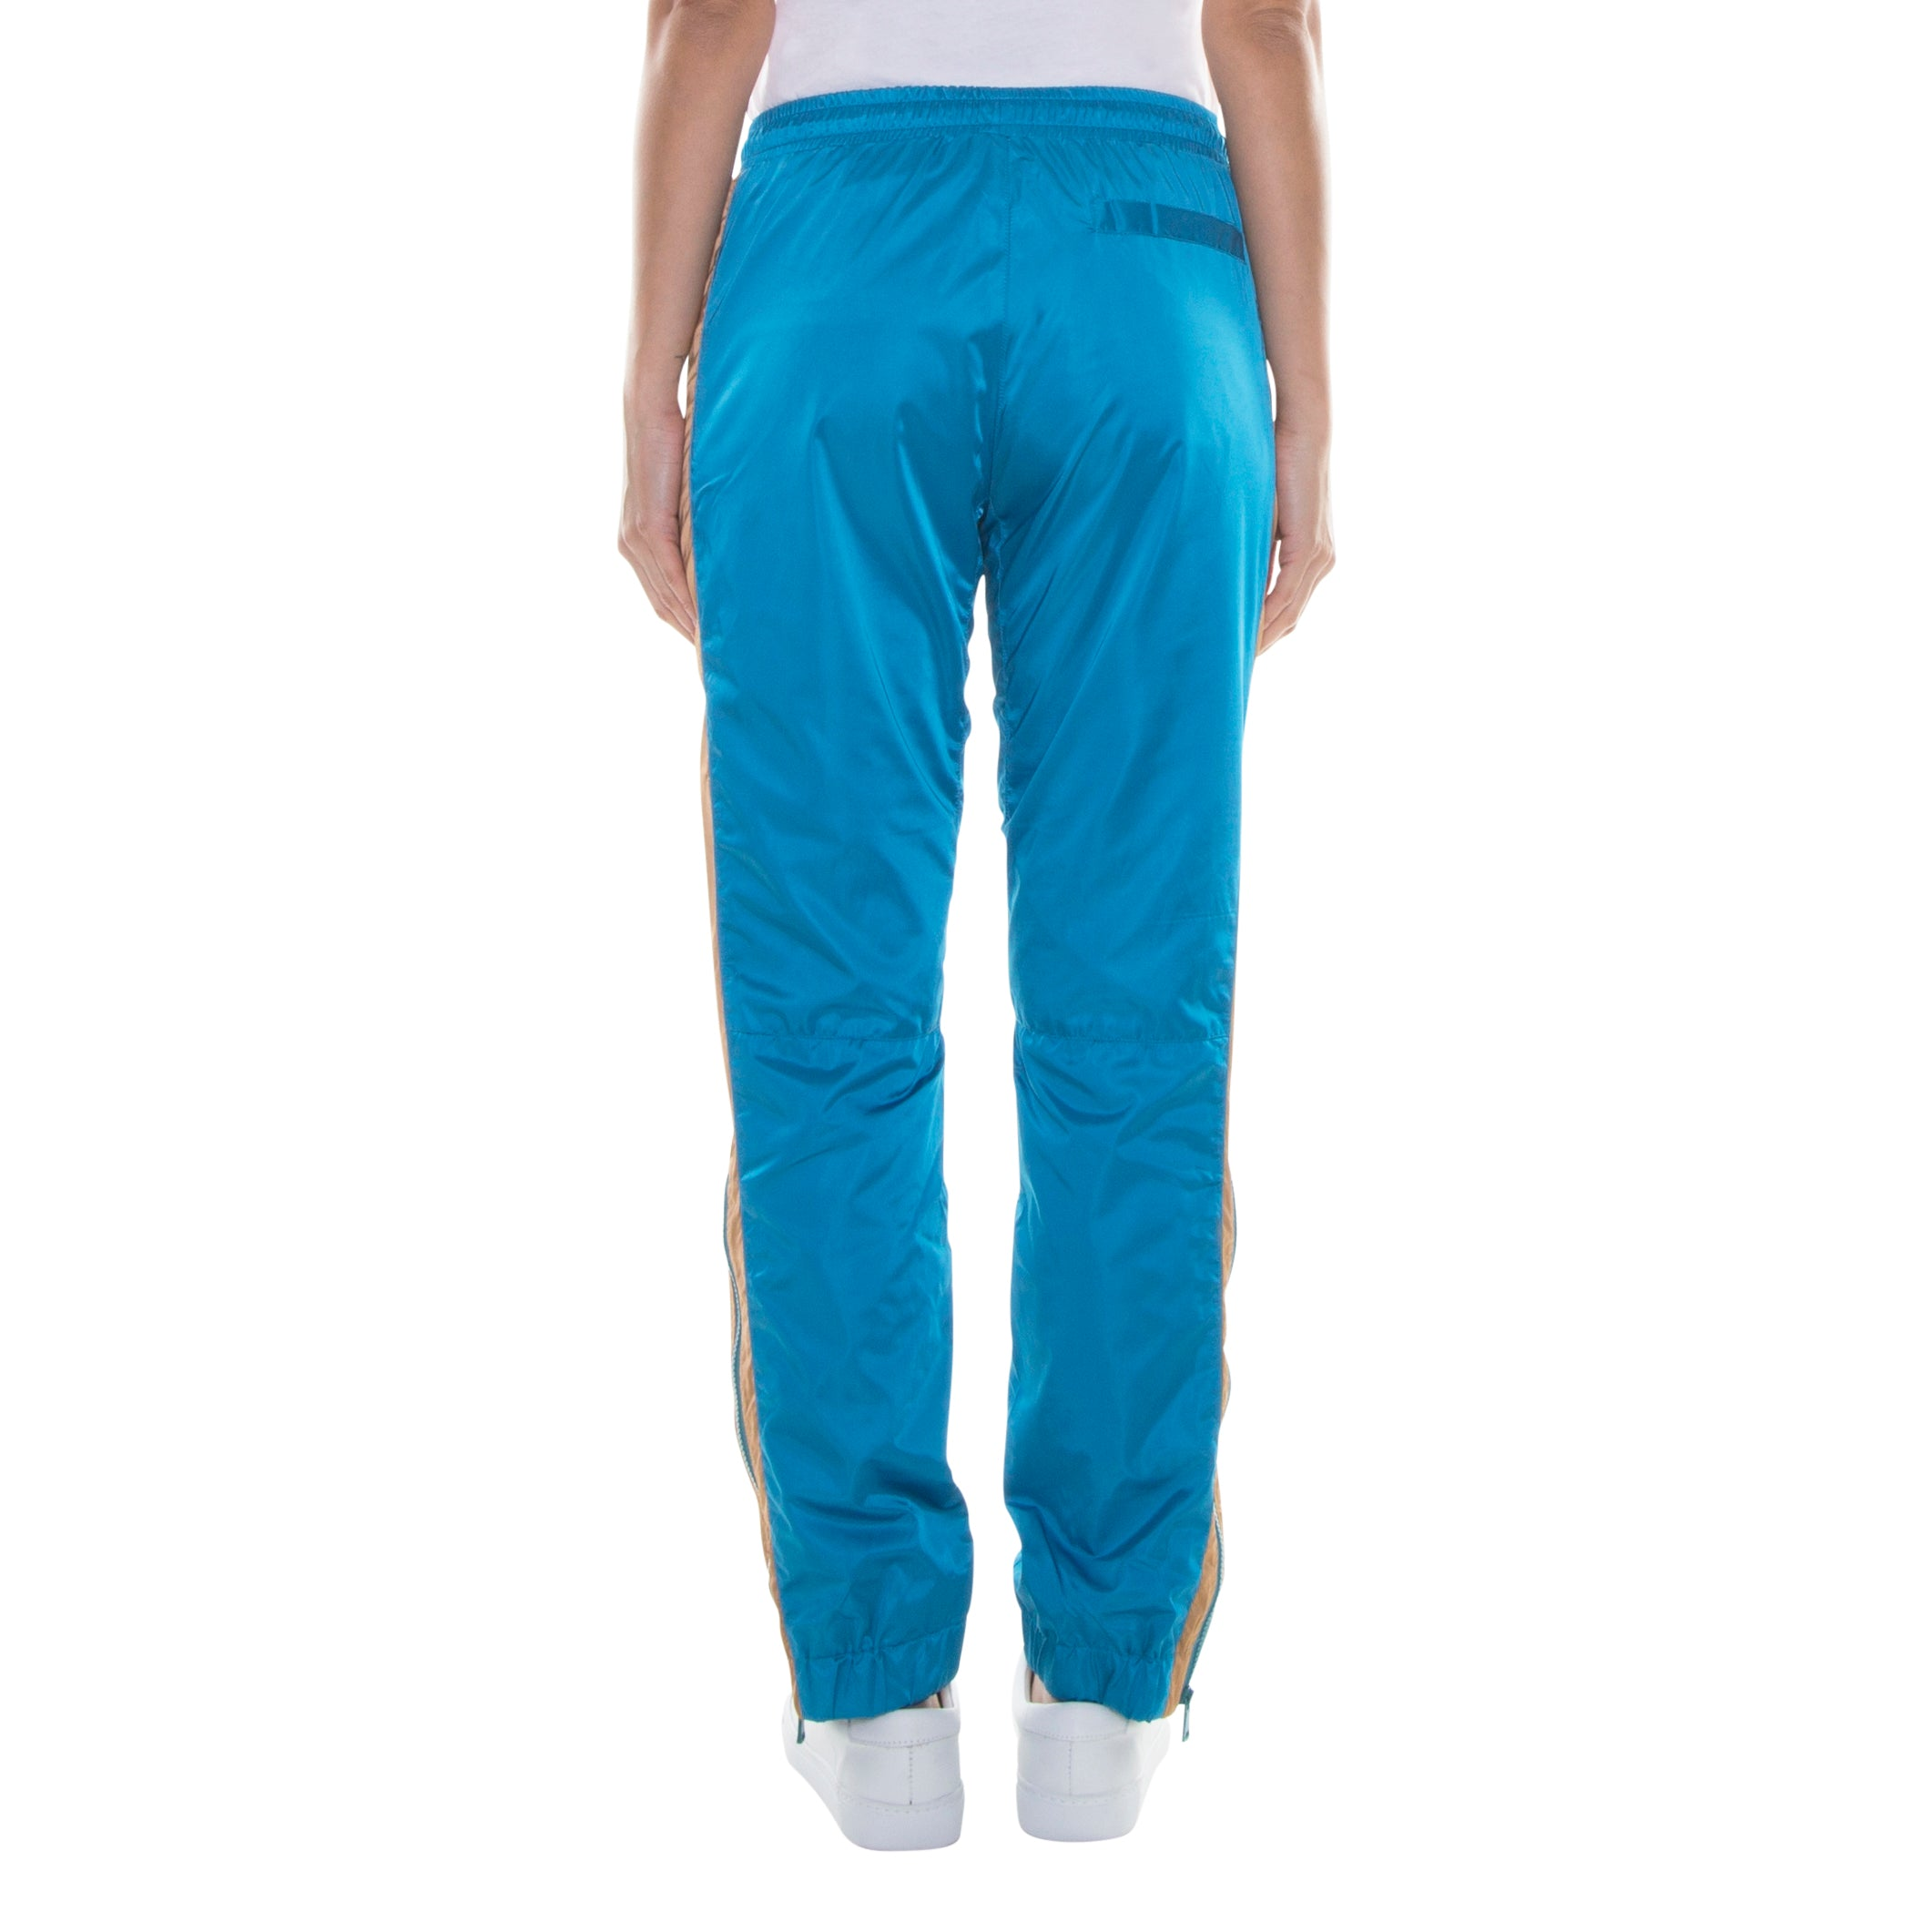 TEAL WIND JOGGERS